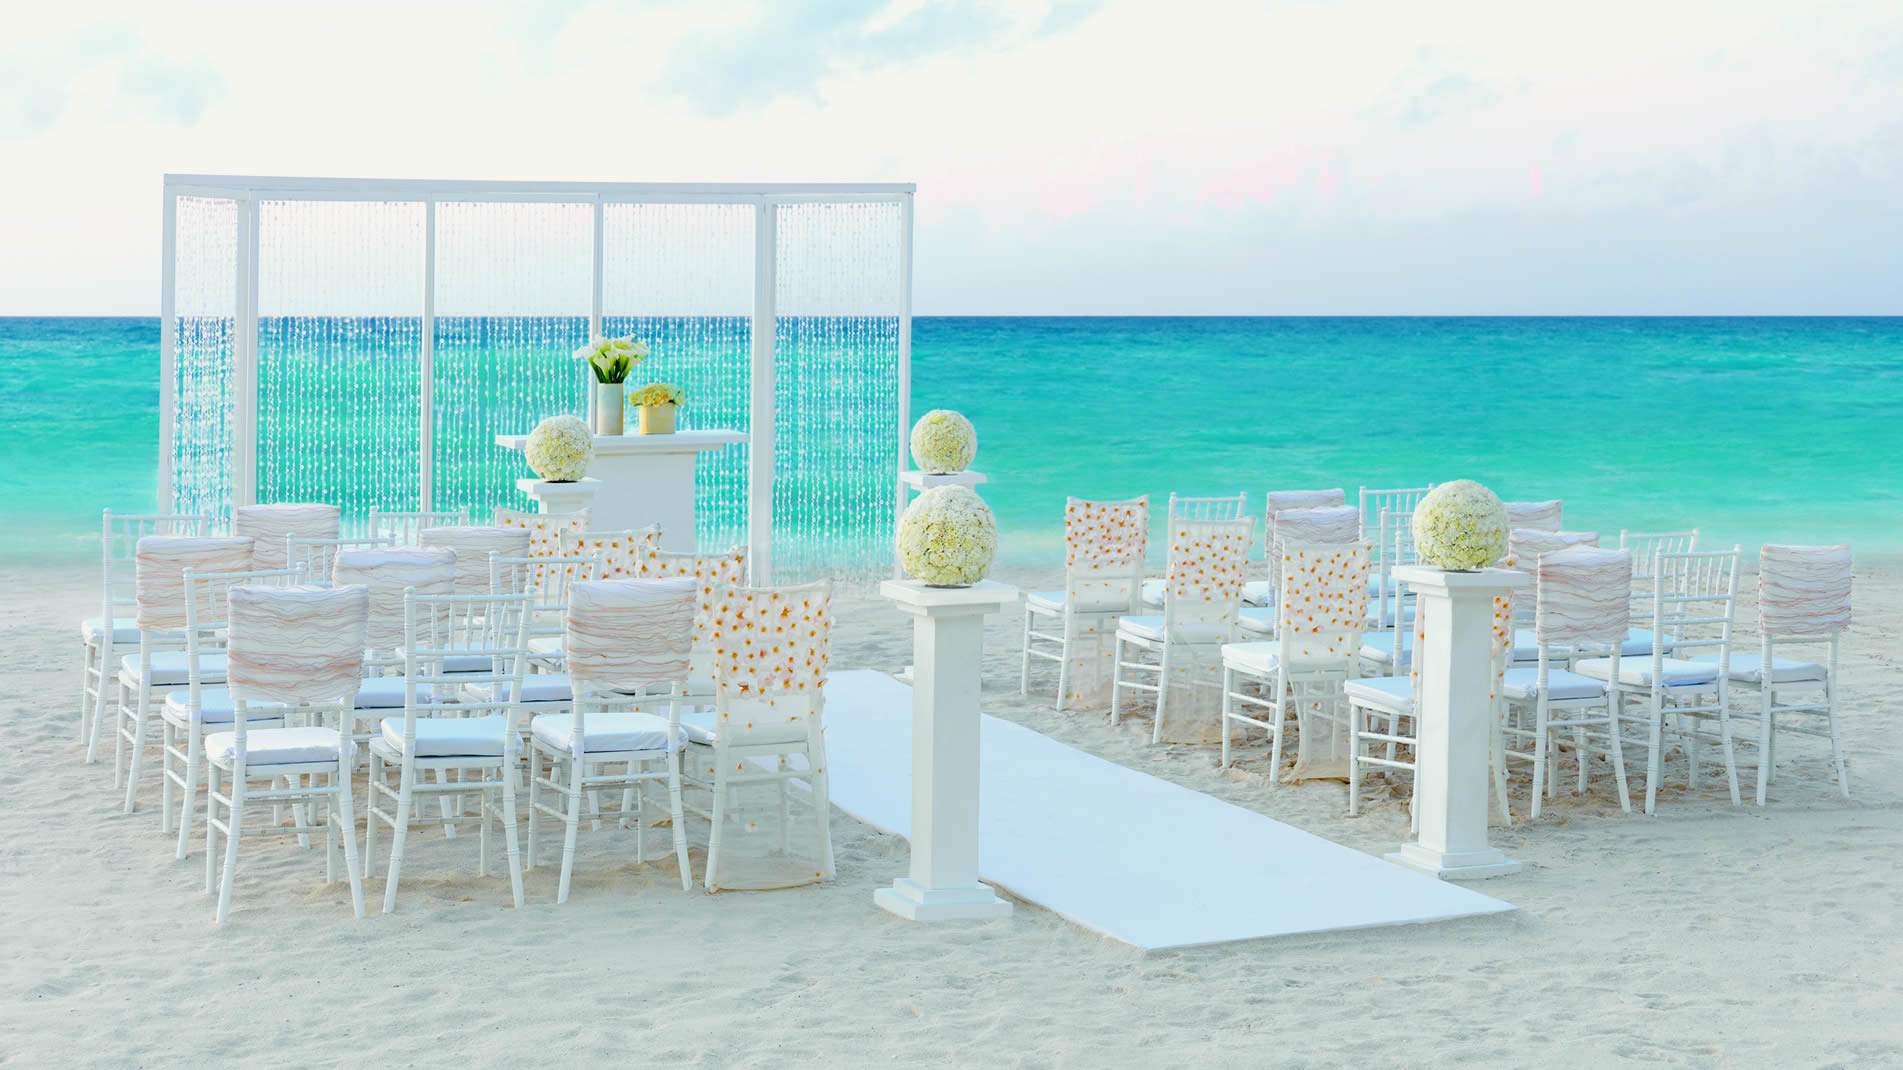 Rock your wedding with a Colin Cowie Wedding Collection at the all-inclusive Hard Rock Hotels in Mexico and the Dominican Republic.